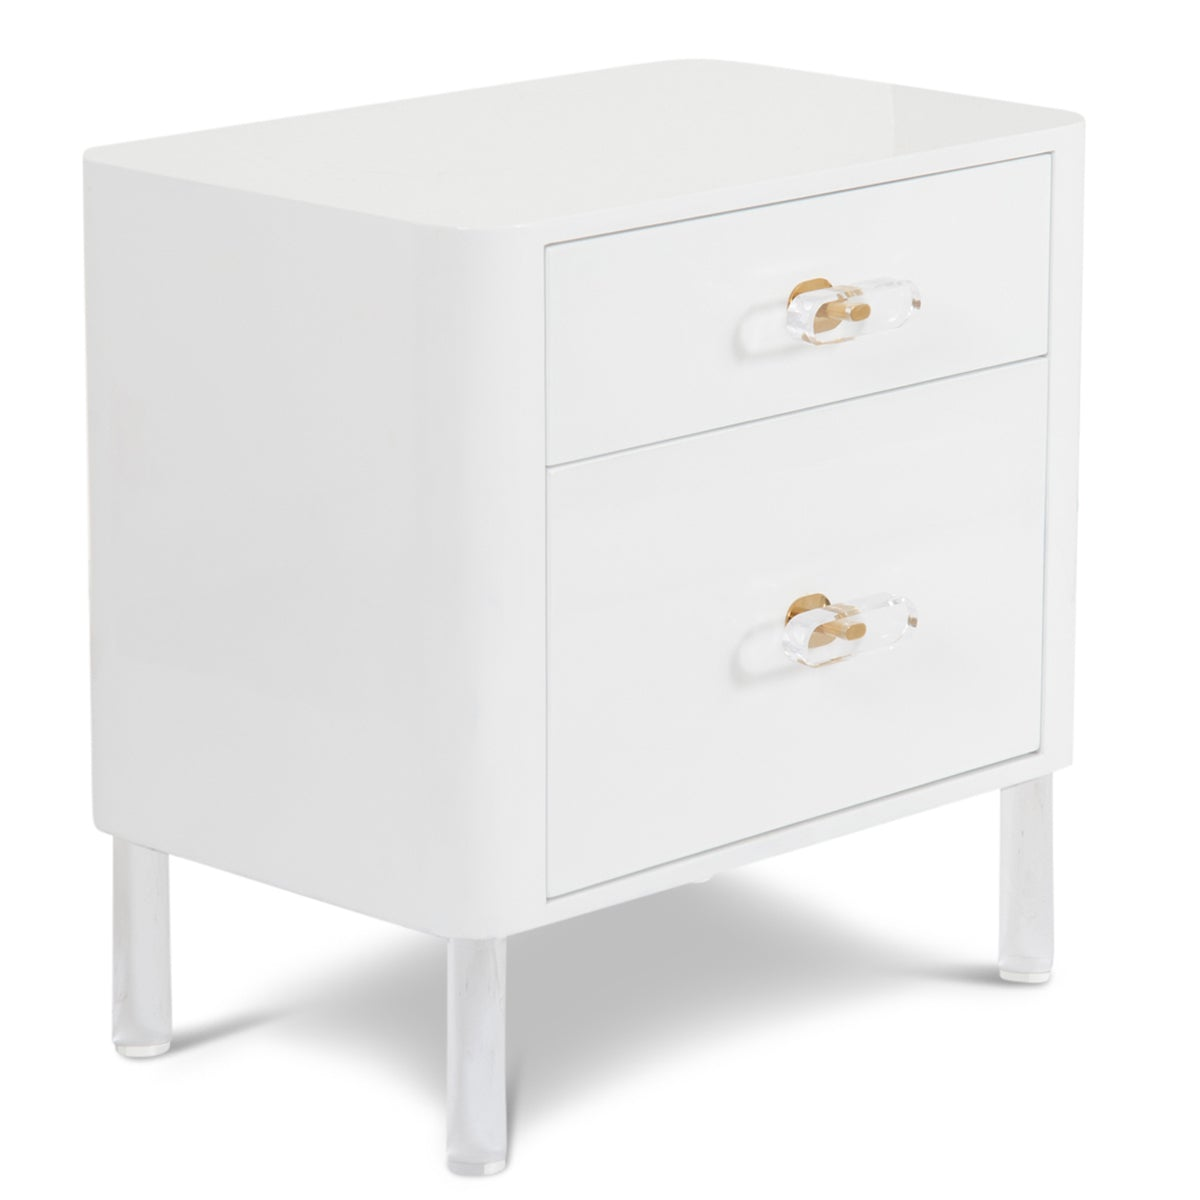 Ibiza 1 Drawer 1 Door Side Table Modern Table With Storage Modshop